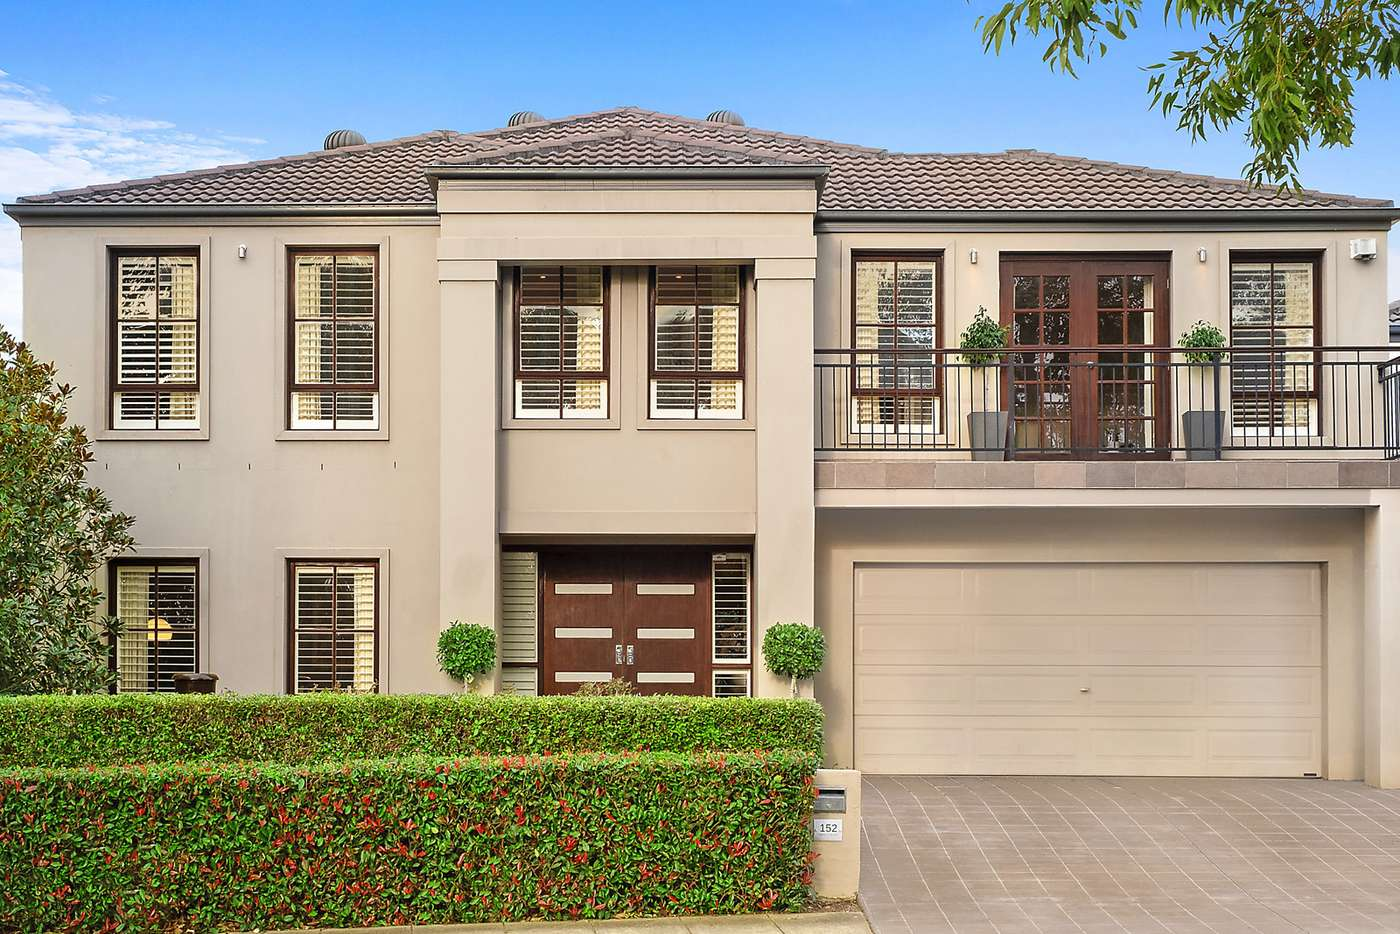 Main view of Homely house listing, 152 Perfection Avenue, Stanhope Gardens NSW 2768